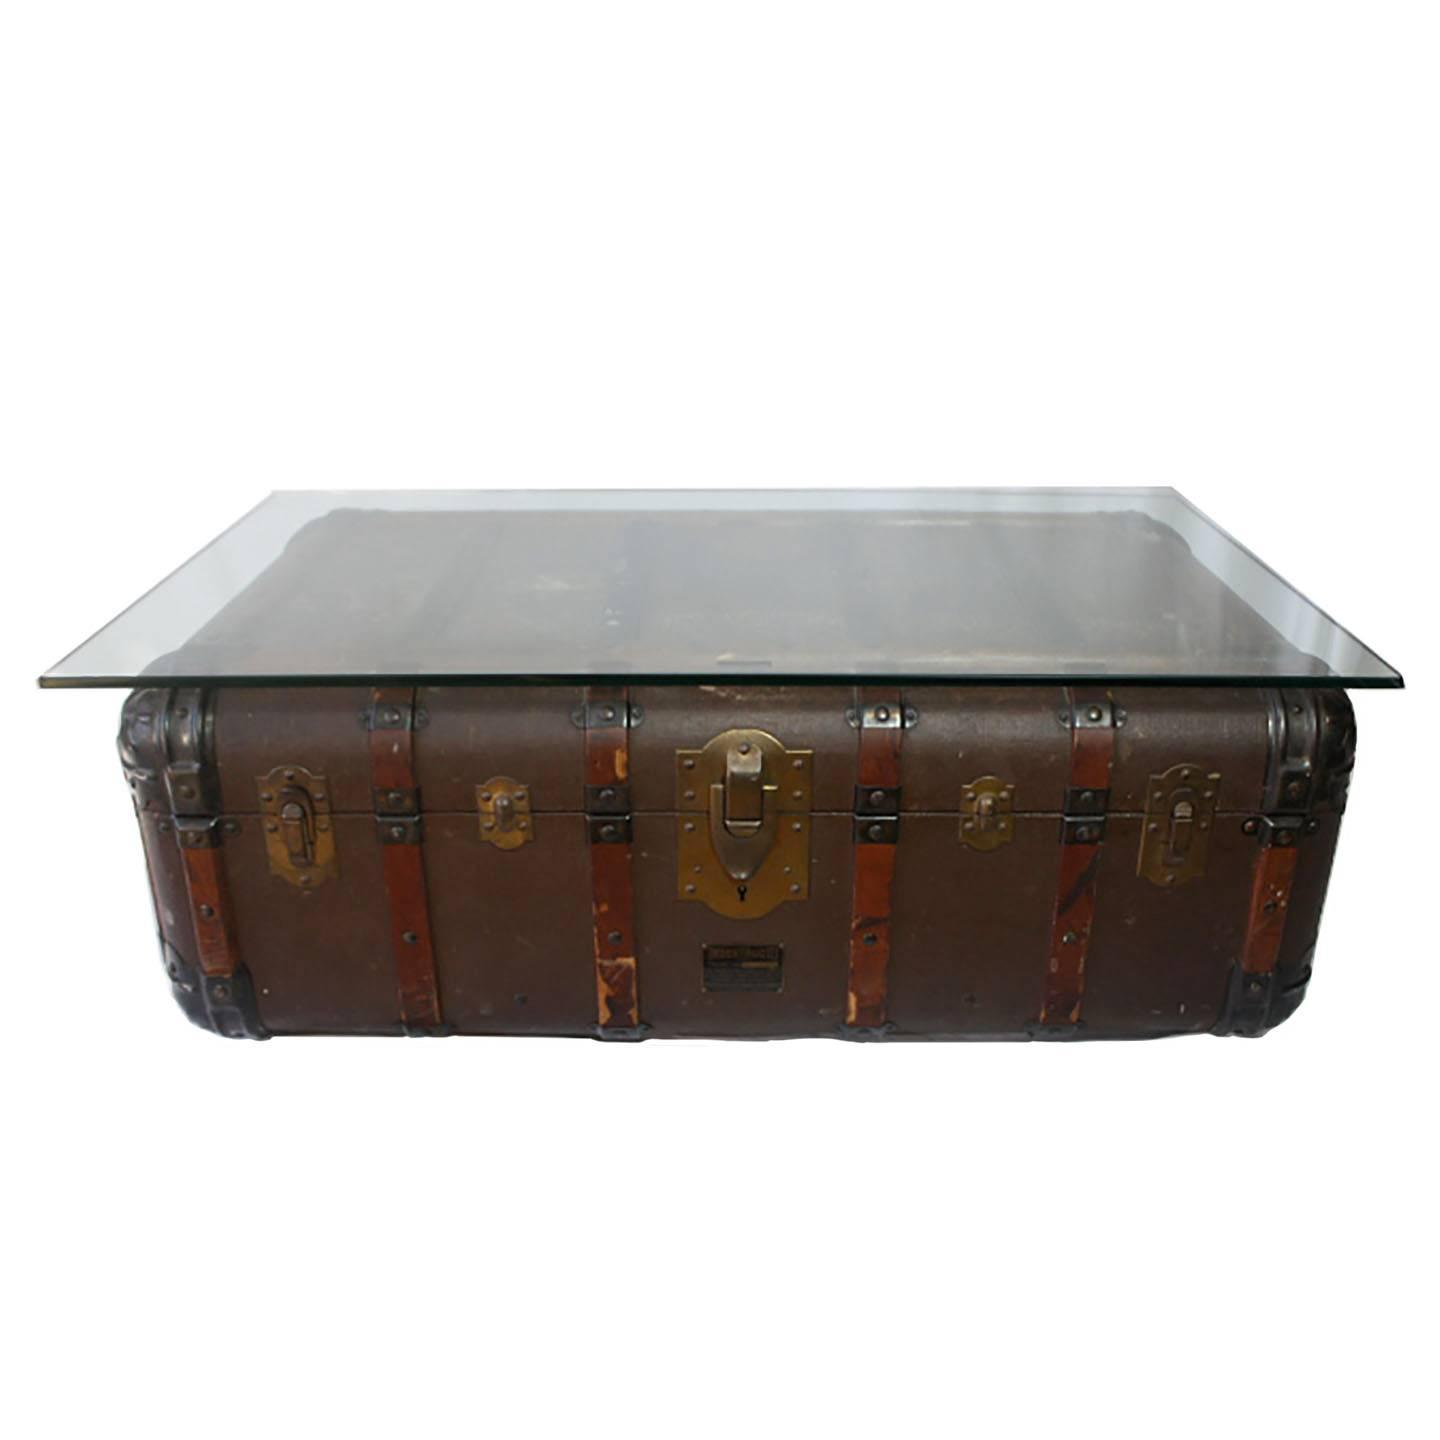 Antique steamer trunk coffee table side table circa 1900 at 1stdibs Trunks coffee tables